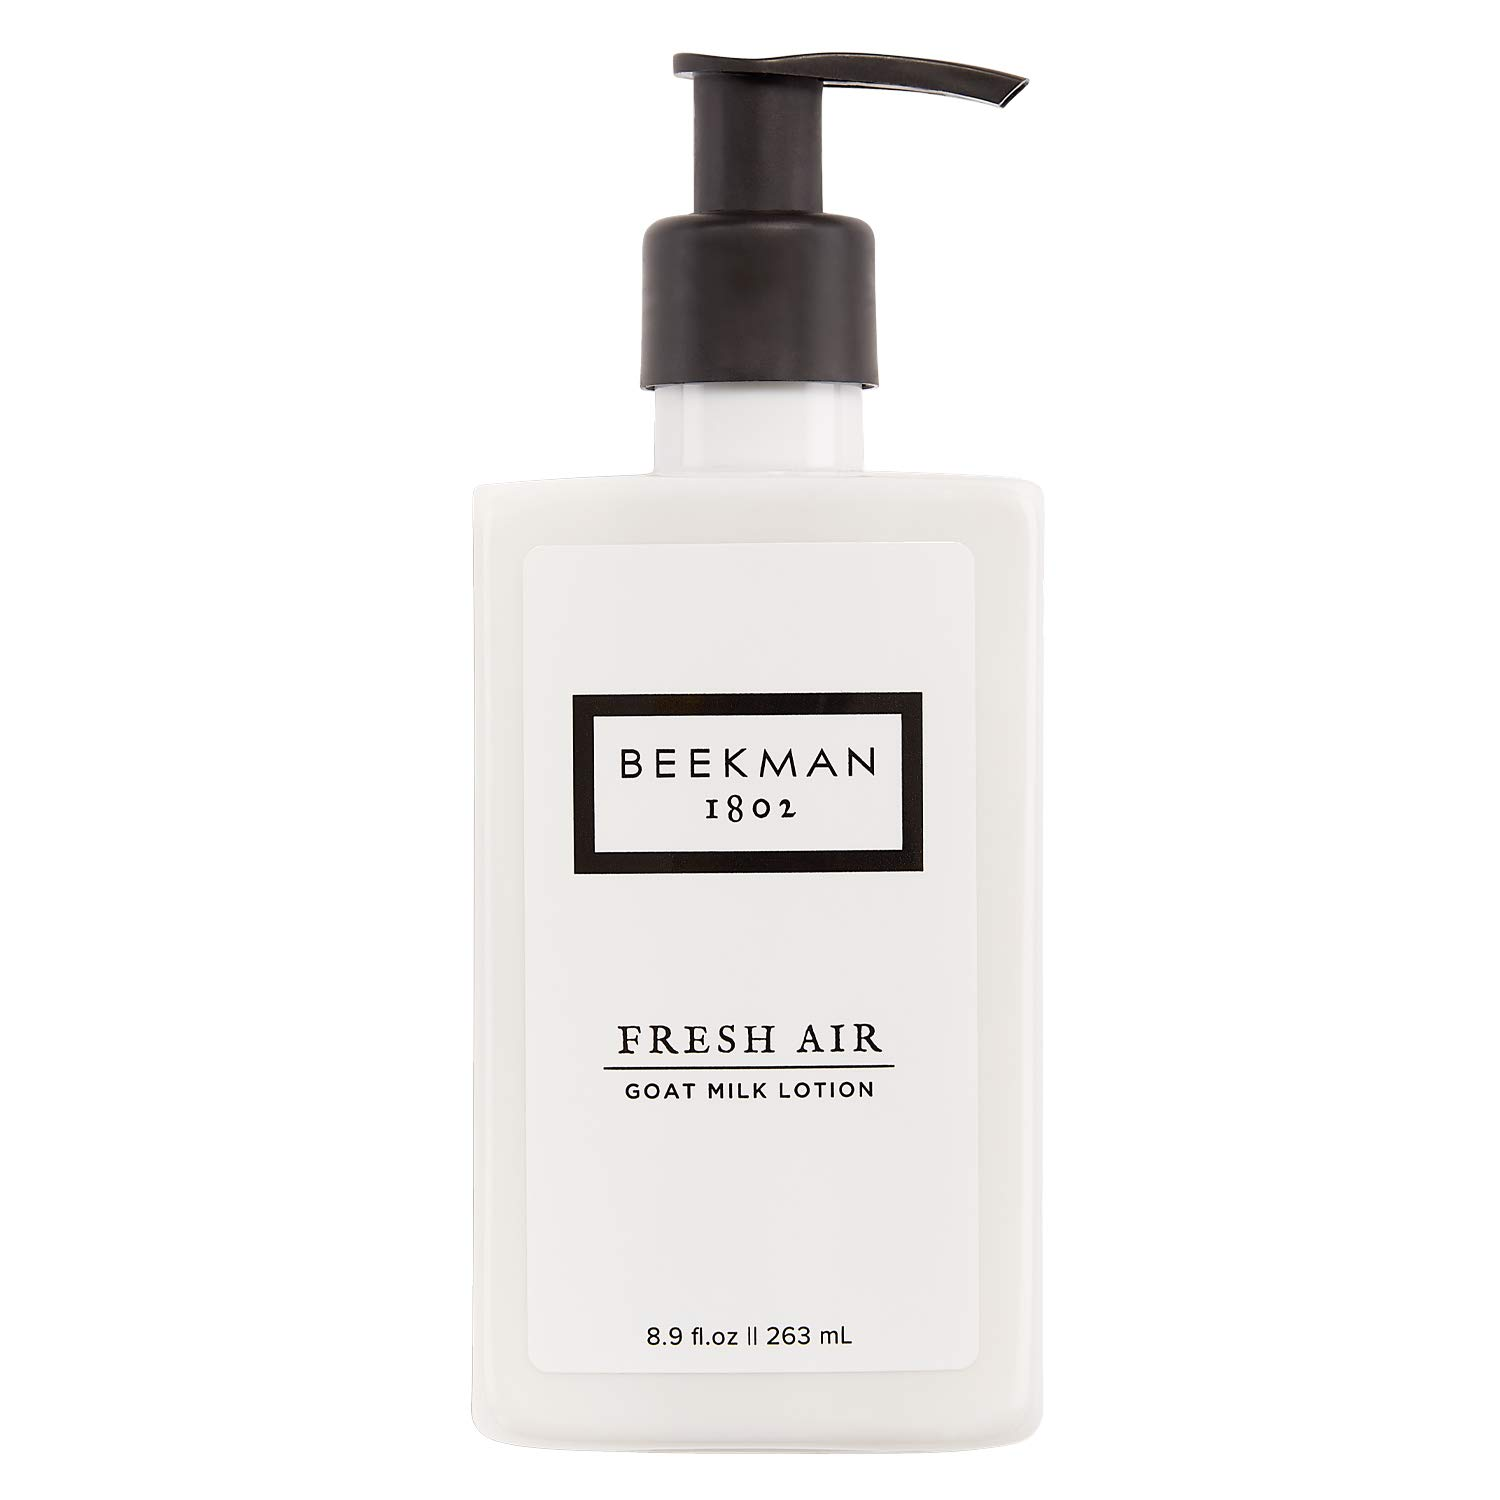 Beekman 1802 - Goat Milk Lotion - Fresh Air - Soothe & Nourish Skin with Hydrating Goat Milk Lotion for Whole-Body - Naturally Rich in Lactic Acid & Vitamins - Cruelty-Free Bodycare - 8.9 oz